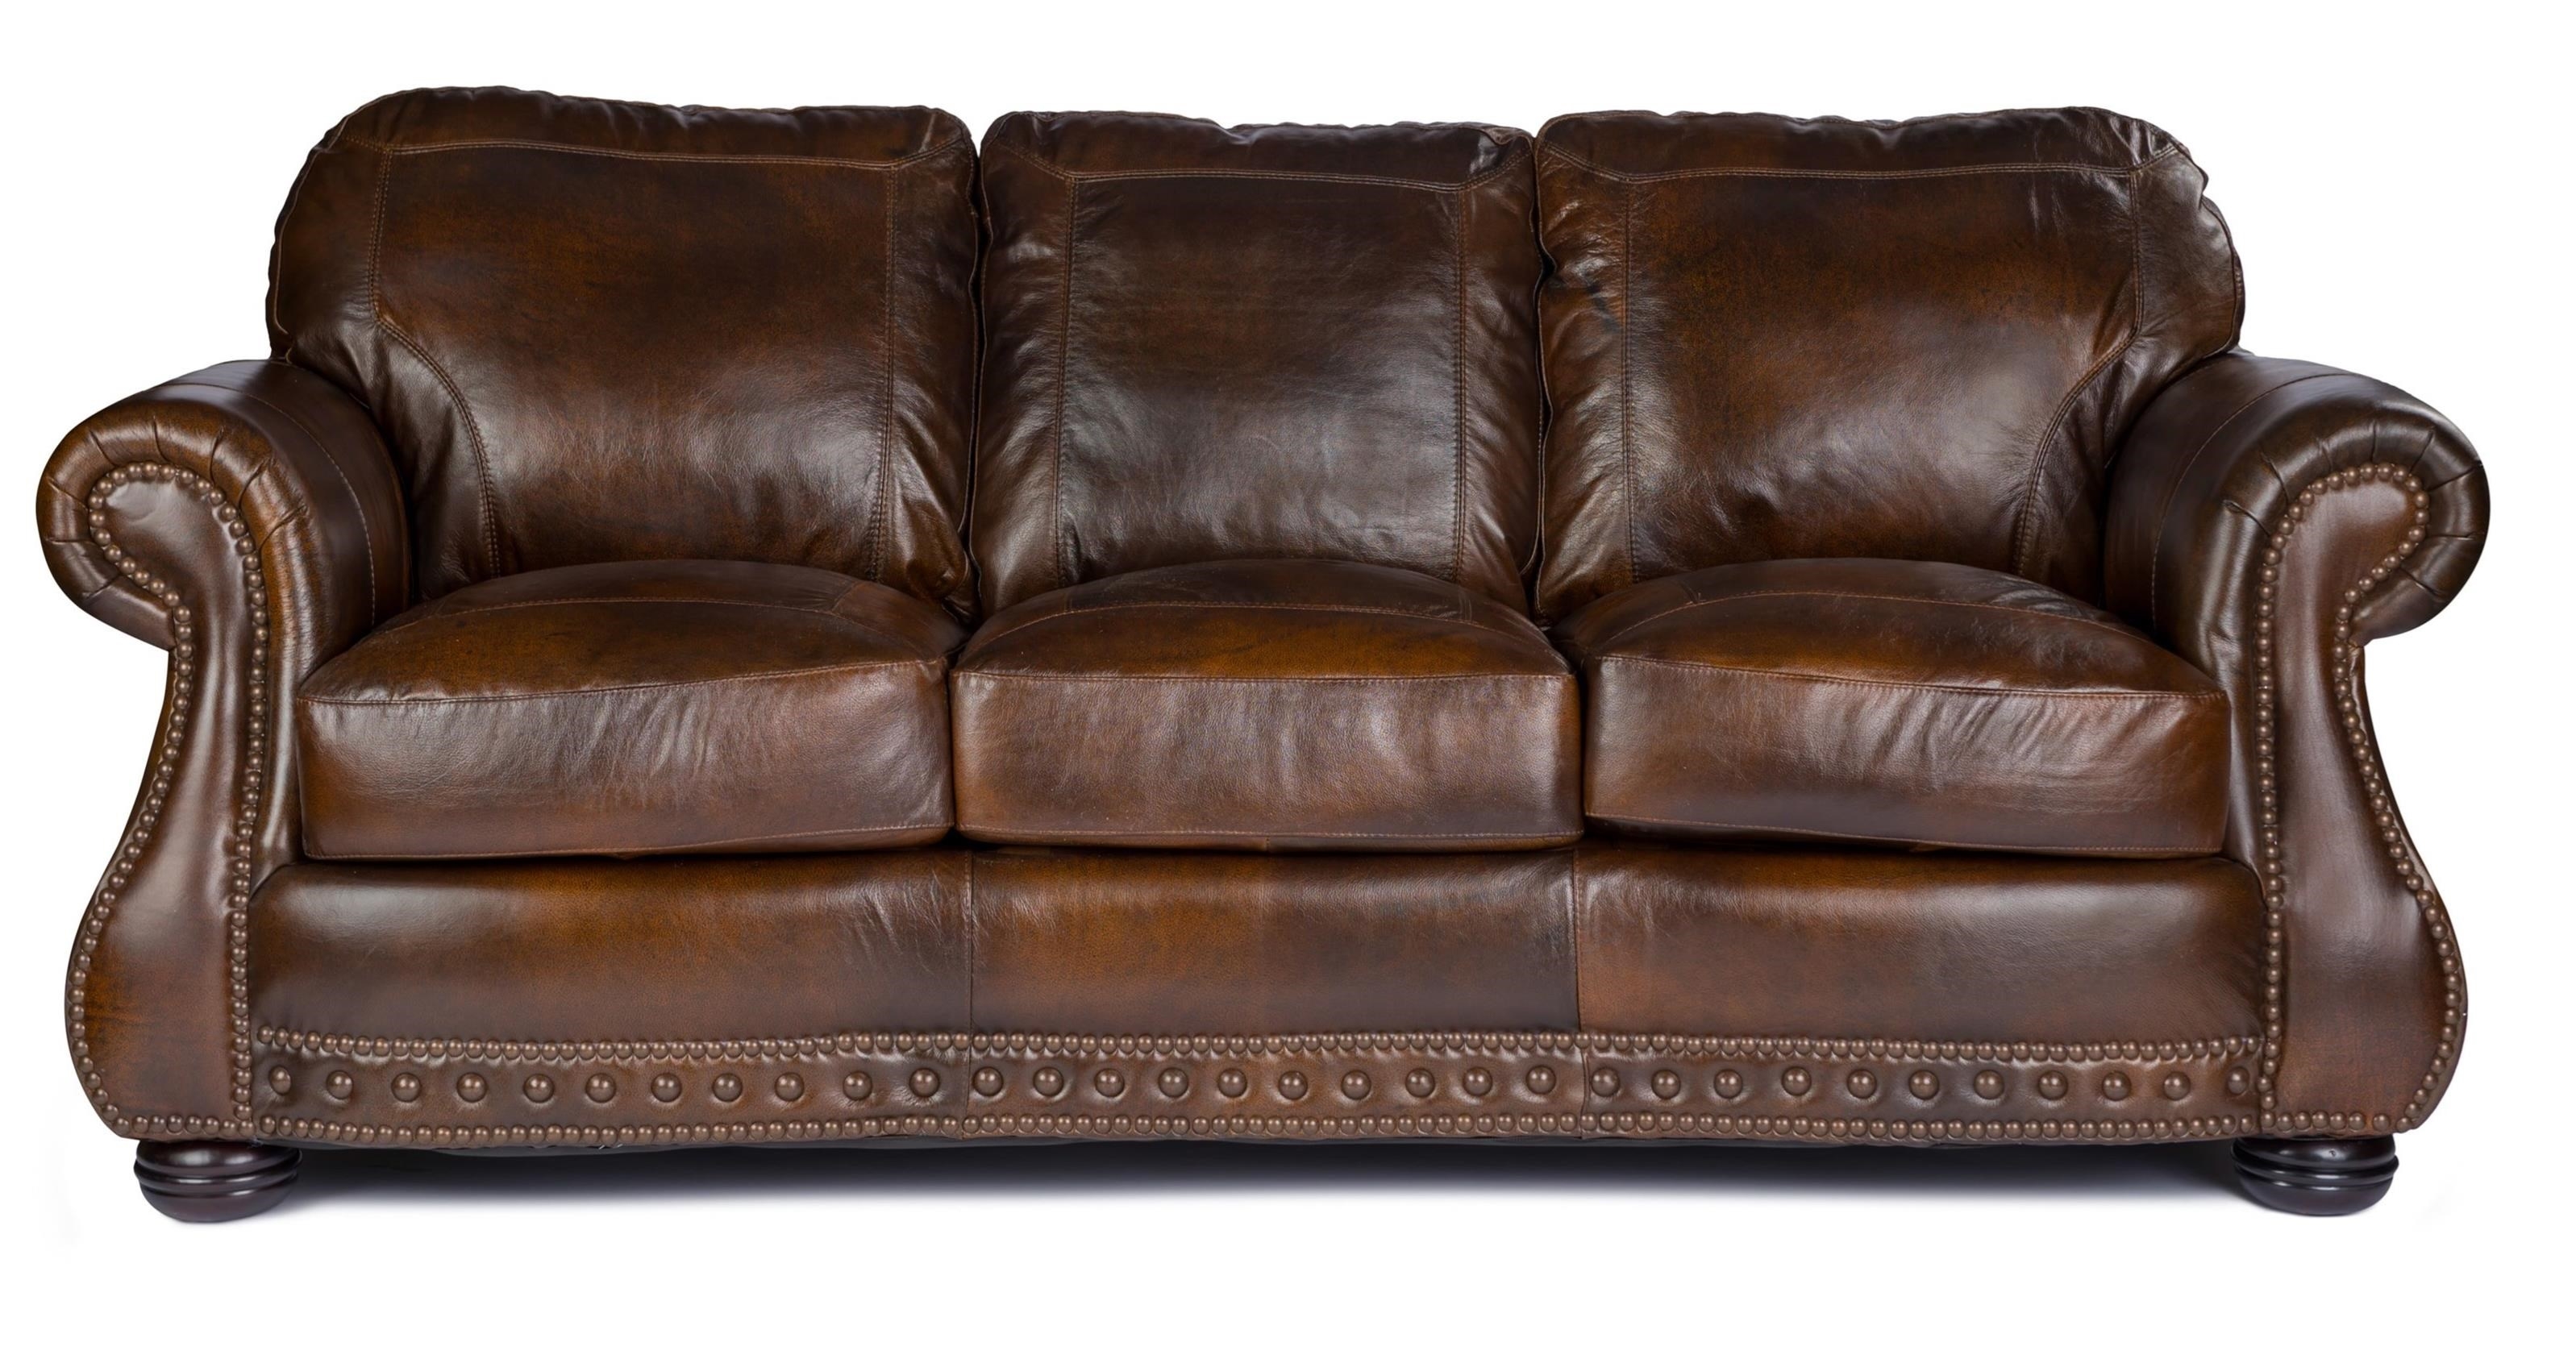 8755 Sofa by USA Premium Leather at Dream Home Interiors